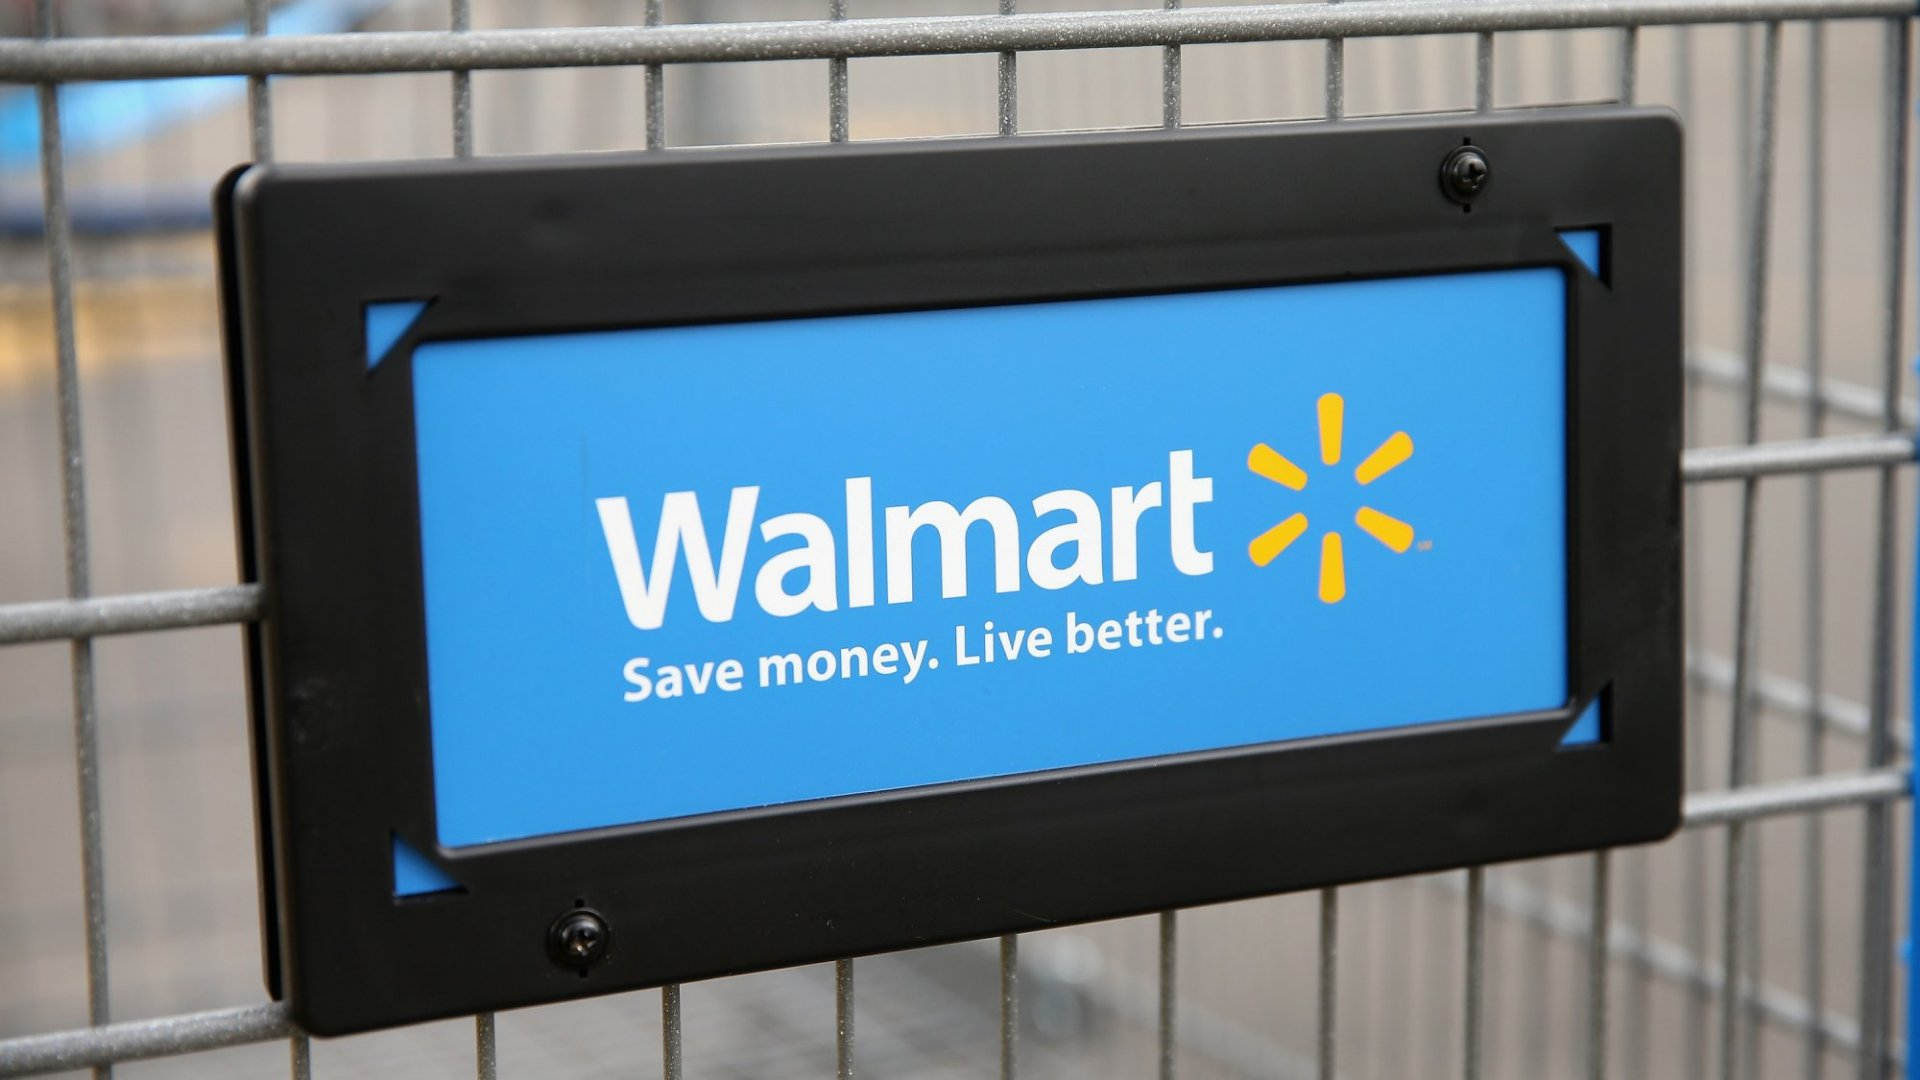 Walmart Just Revealed an Eye-Opening Statistic That Could Change Everything You Think About Walmart